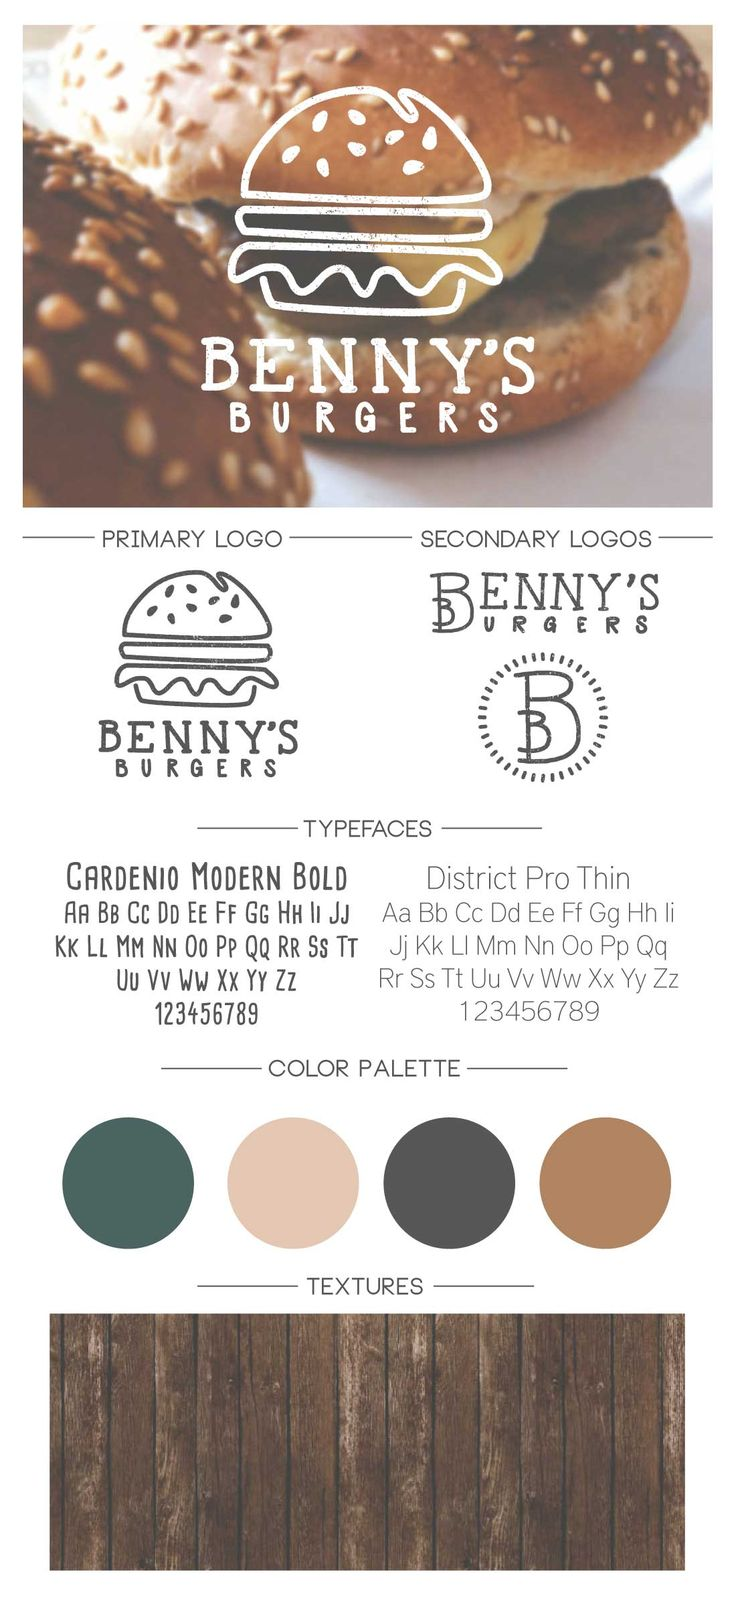 Benny's Burgers. Branding identity for a burger shop. Going for a casual, laid-back feel but still contemporary and put together.